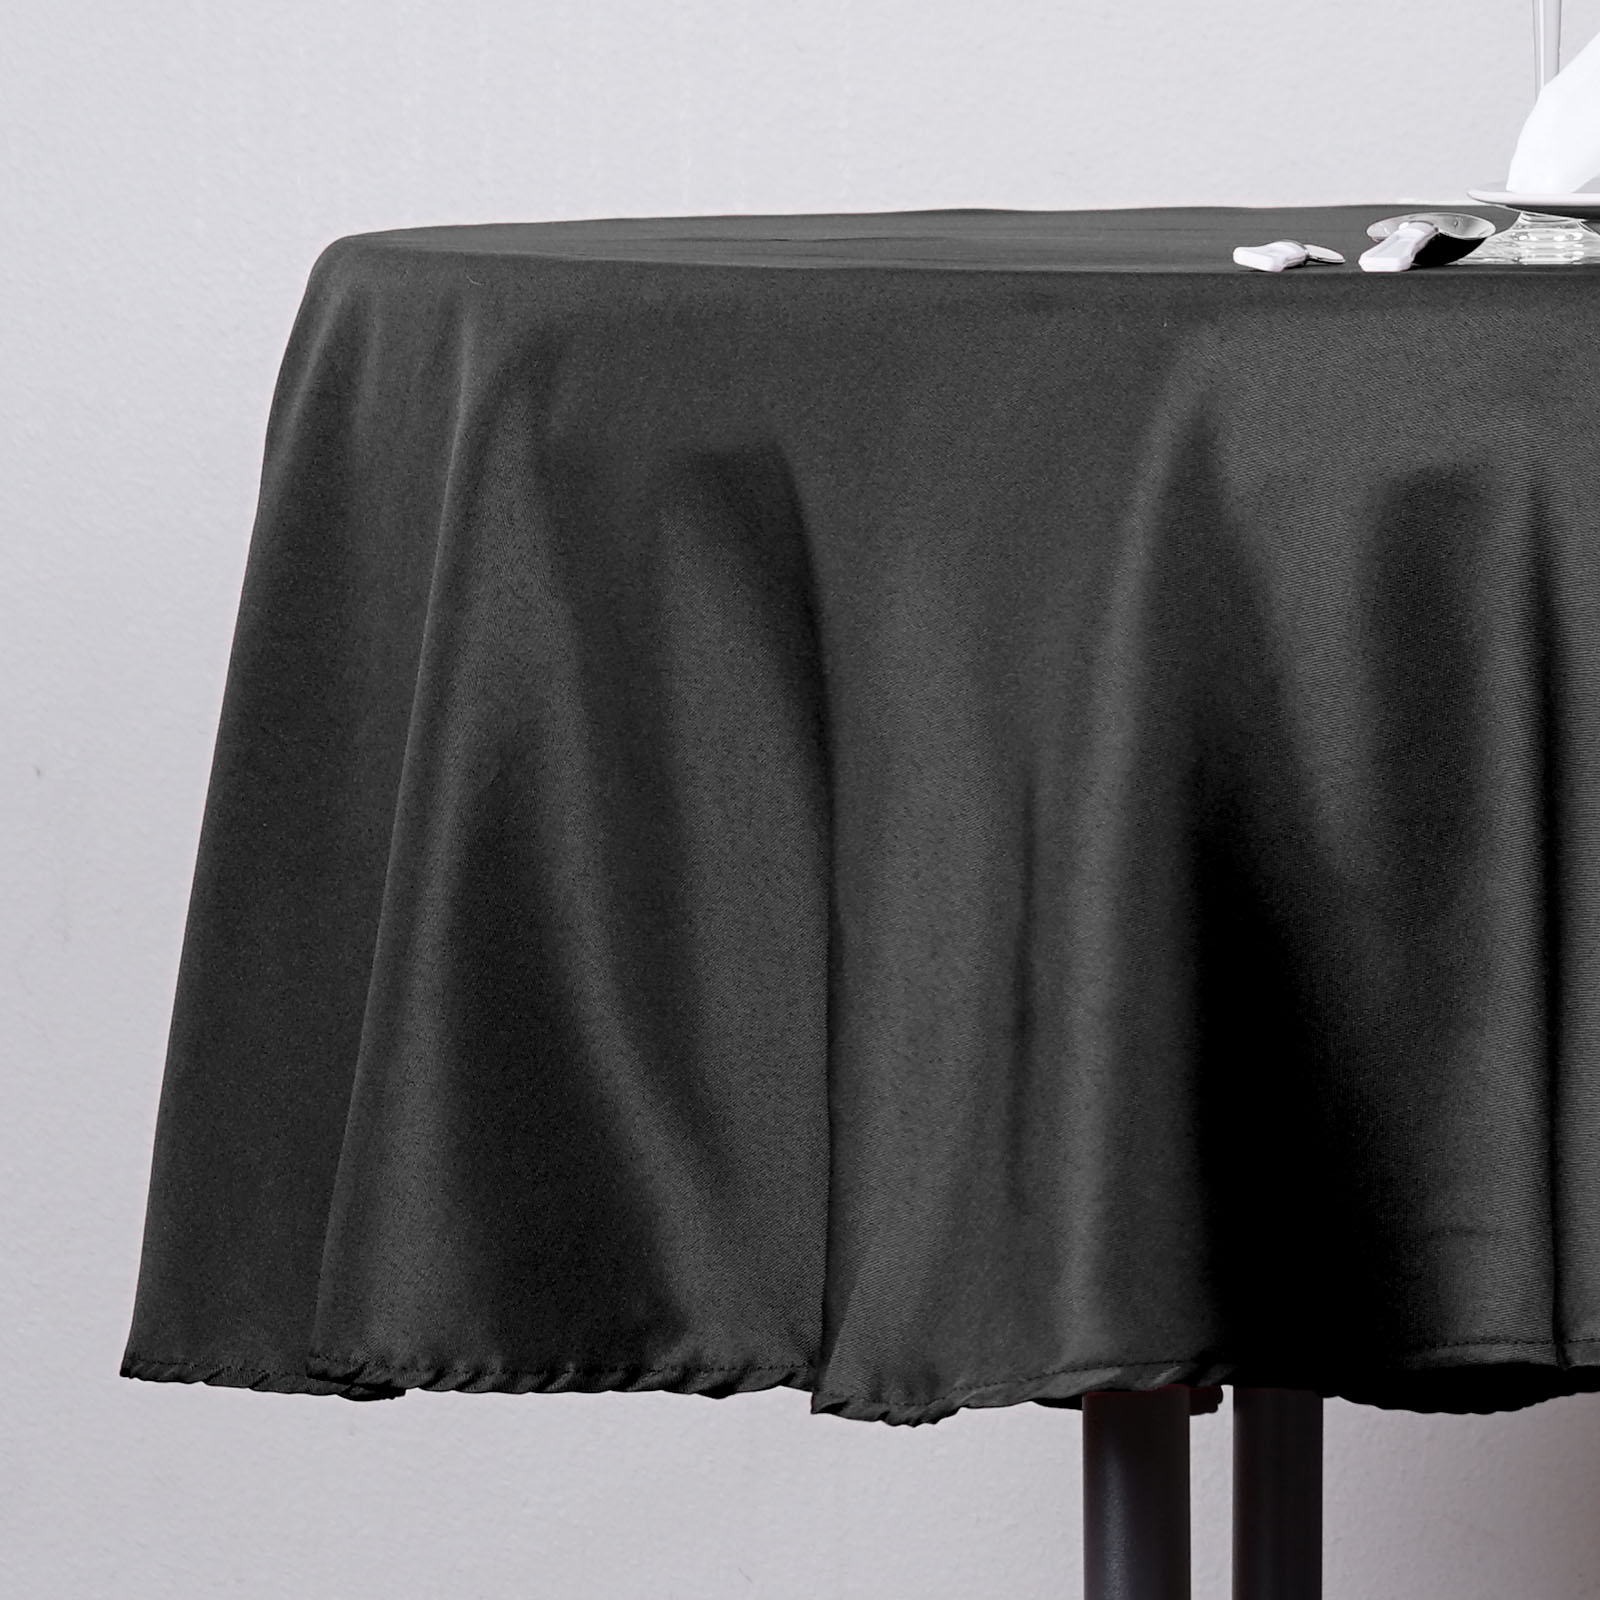 70 round polyester tablecloths for wedding buy catering table 70 034 round polyester tablecloths for wedding buy junglespirit